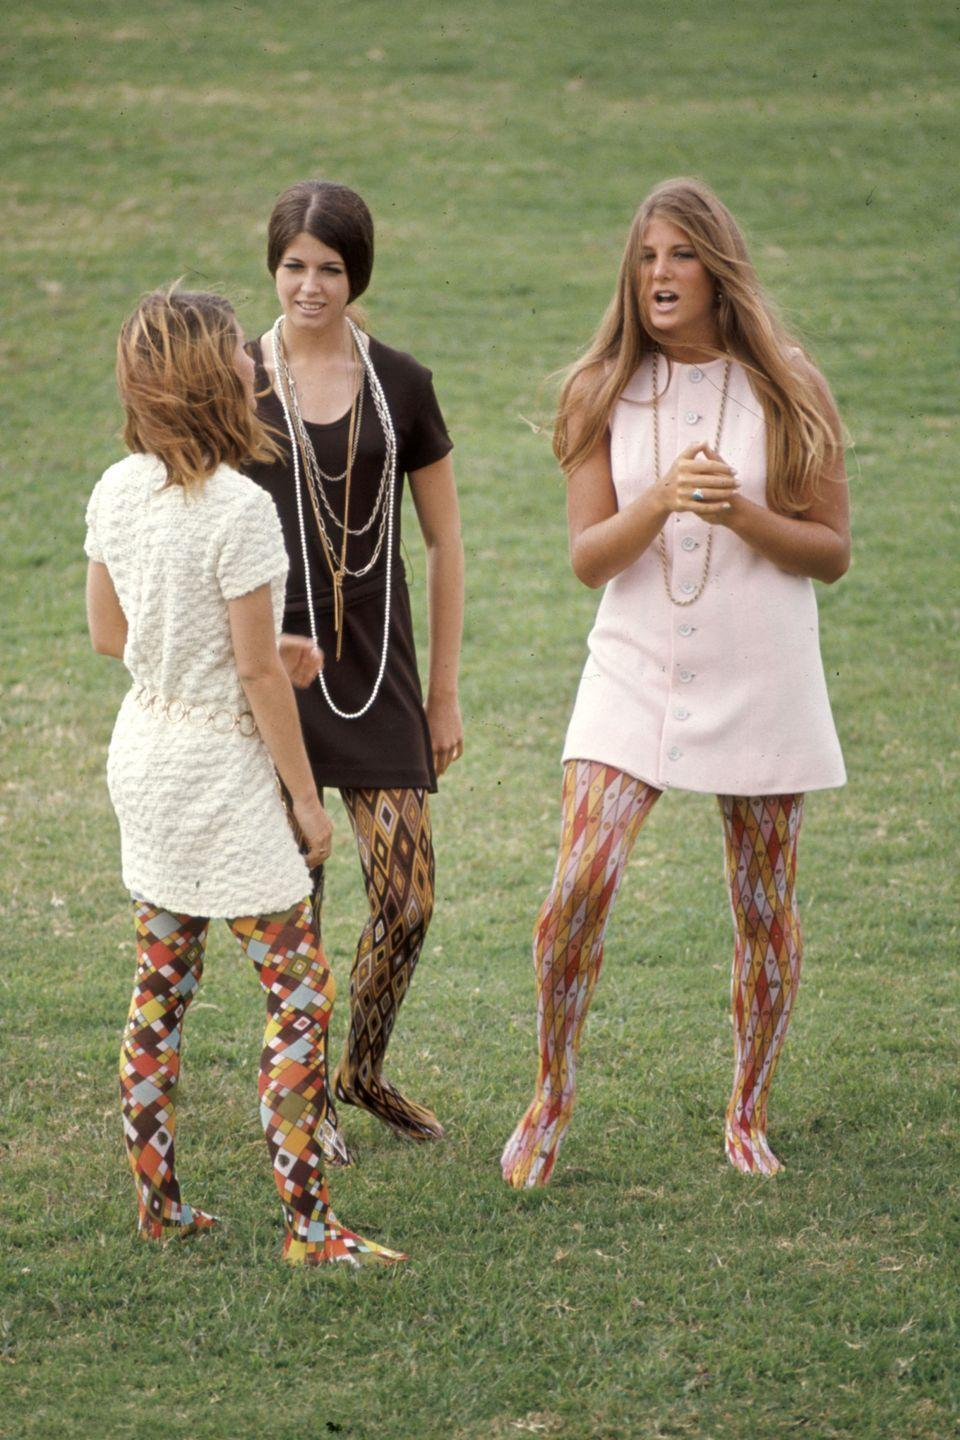 <p>Gotta be honest, not the most flattering look for your legs. </p>